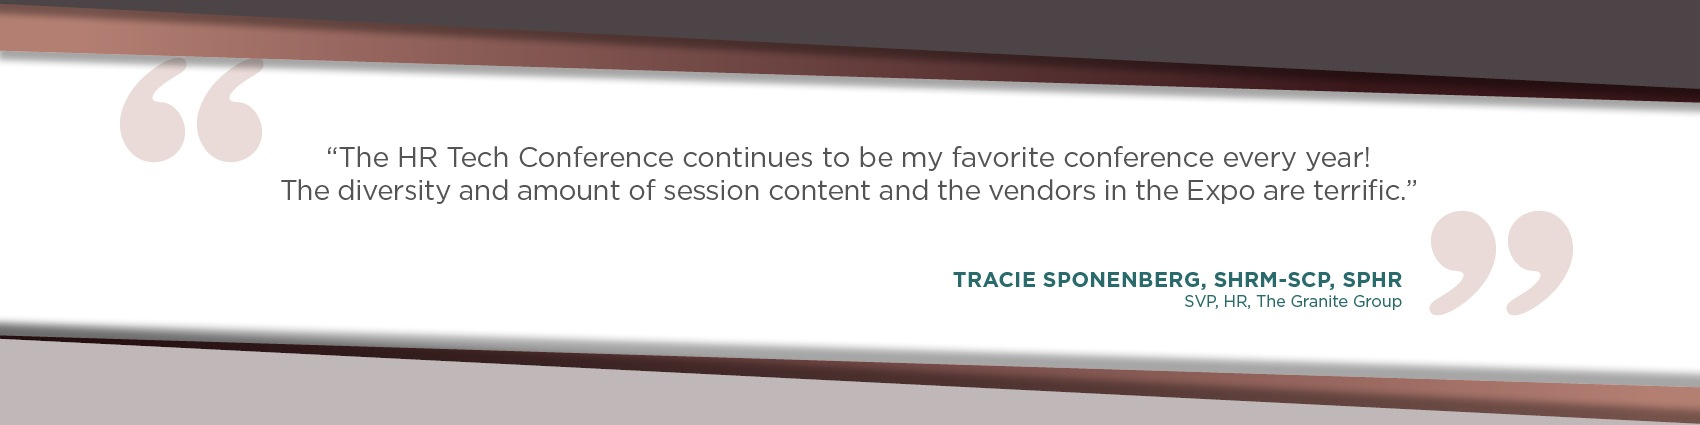 The HR Tech Conference continues to be my favorite conference every year! The diversity and amount of session content and the vendors in the Expo are terrific. - Tracie Sponenberg